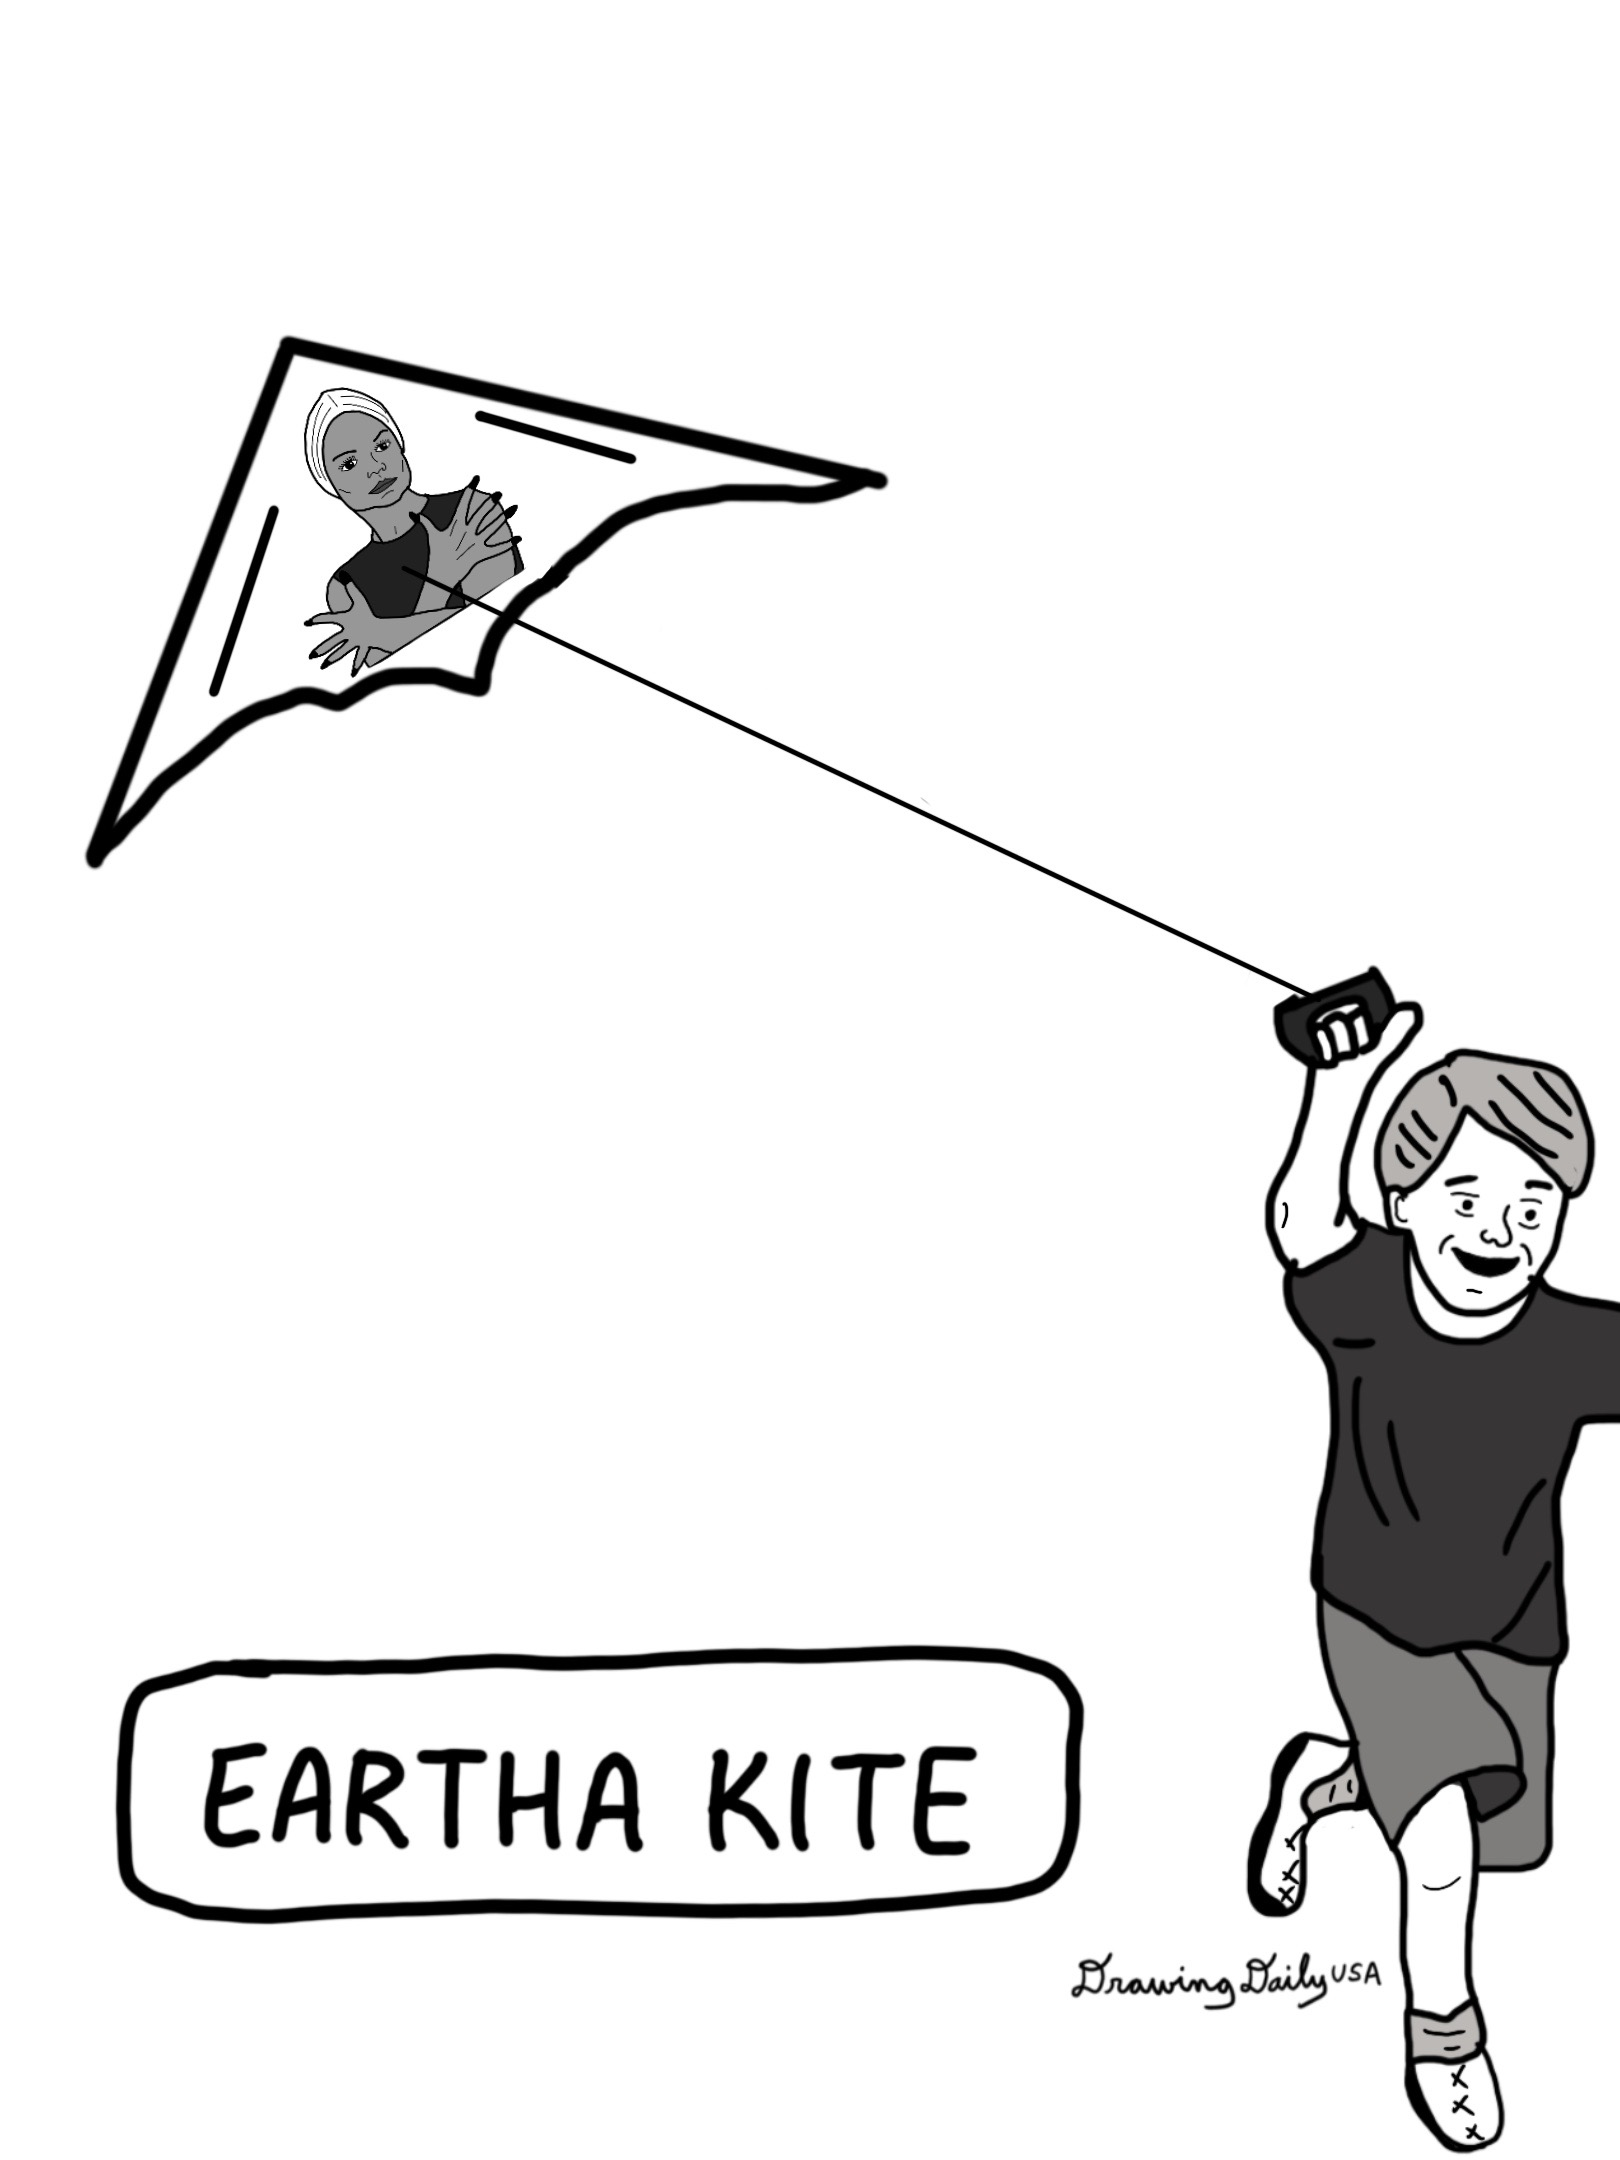 Eartha Kite